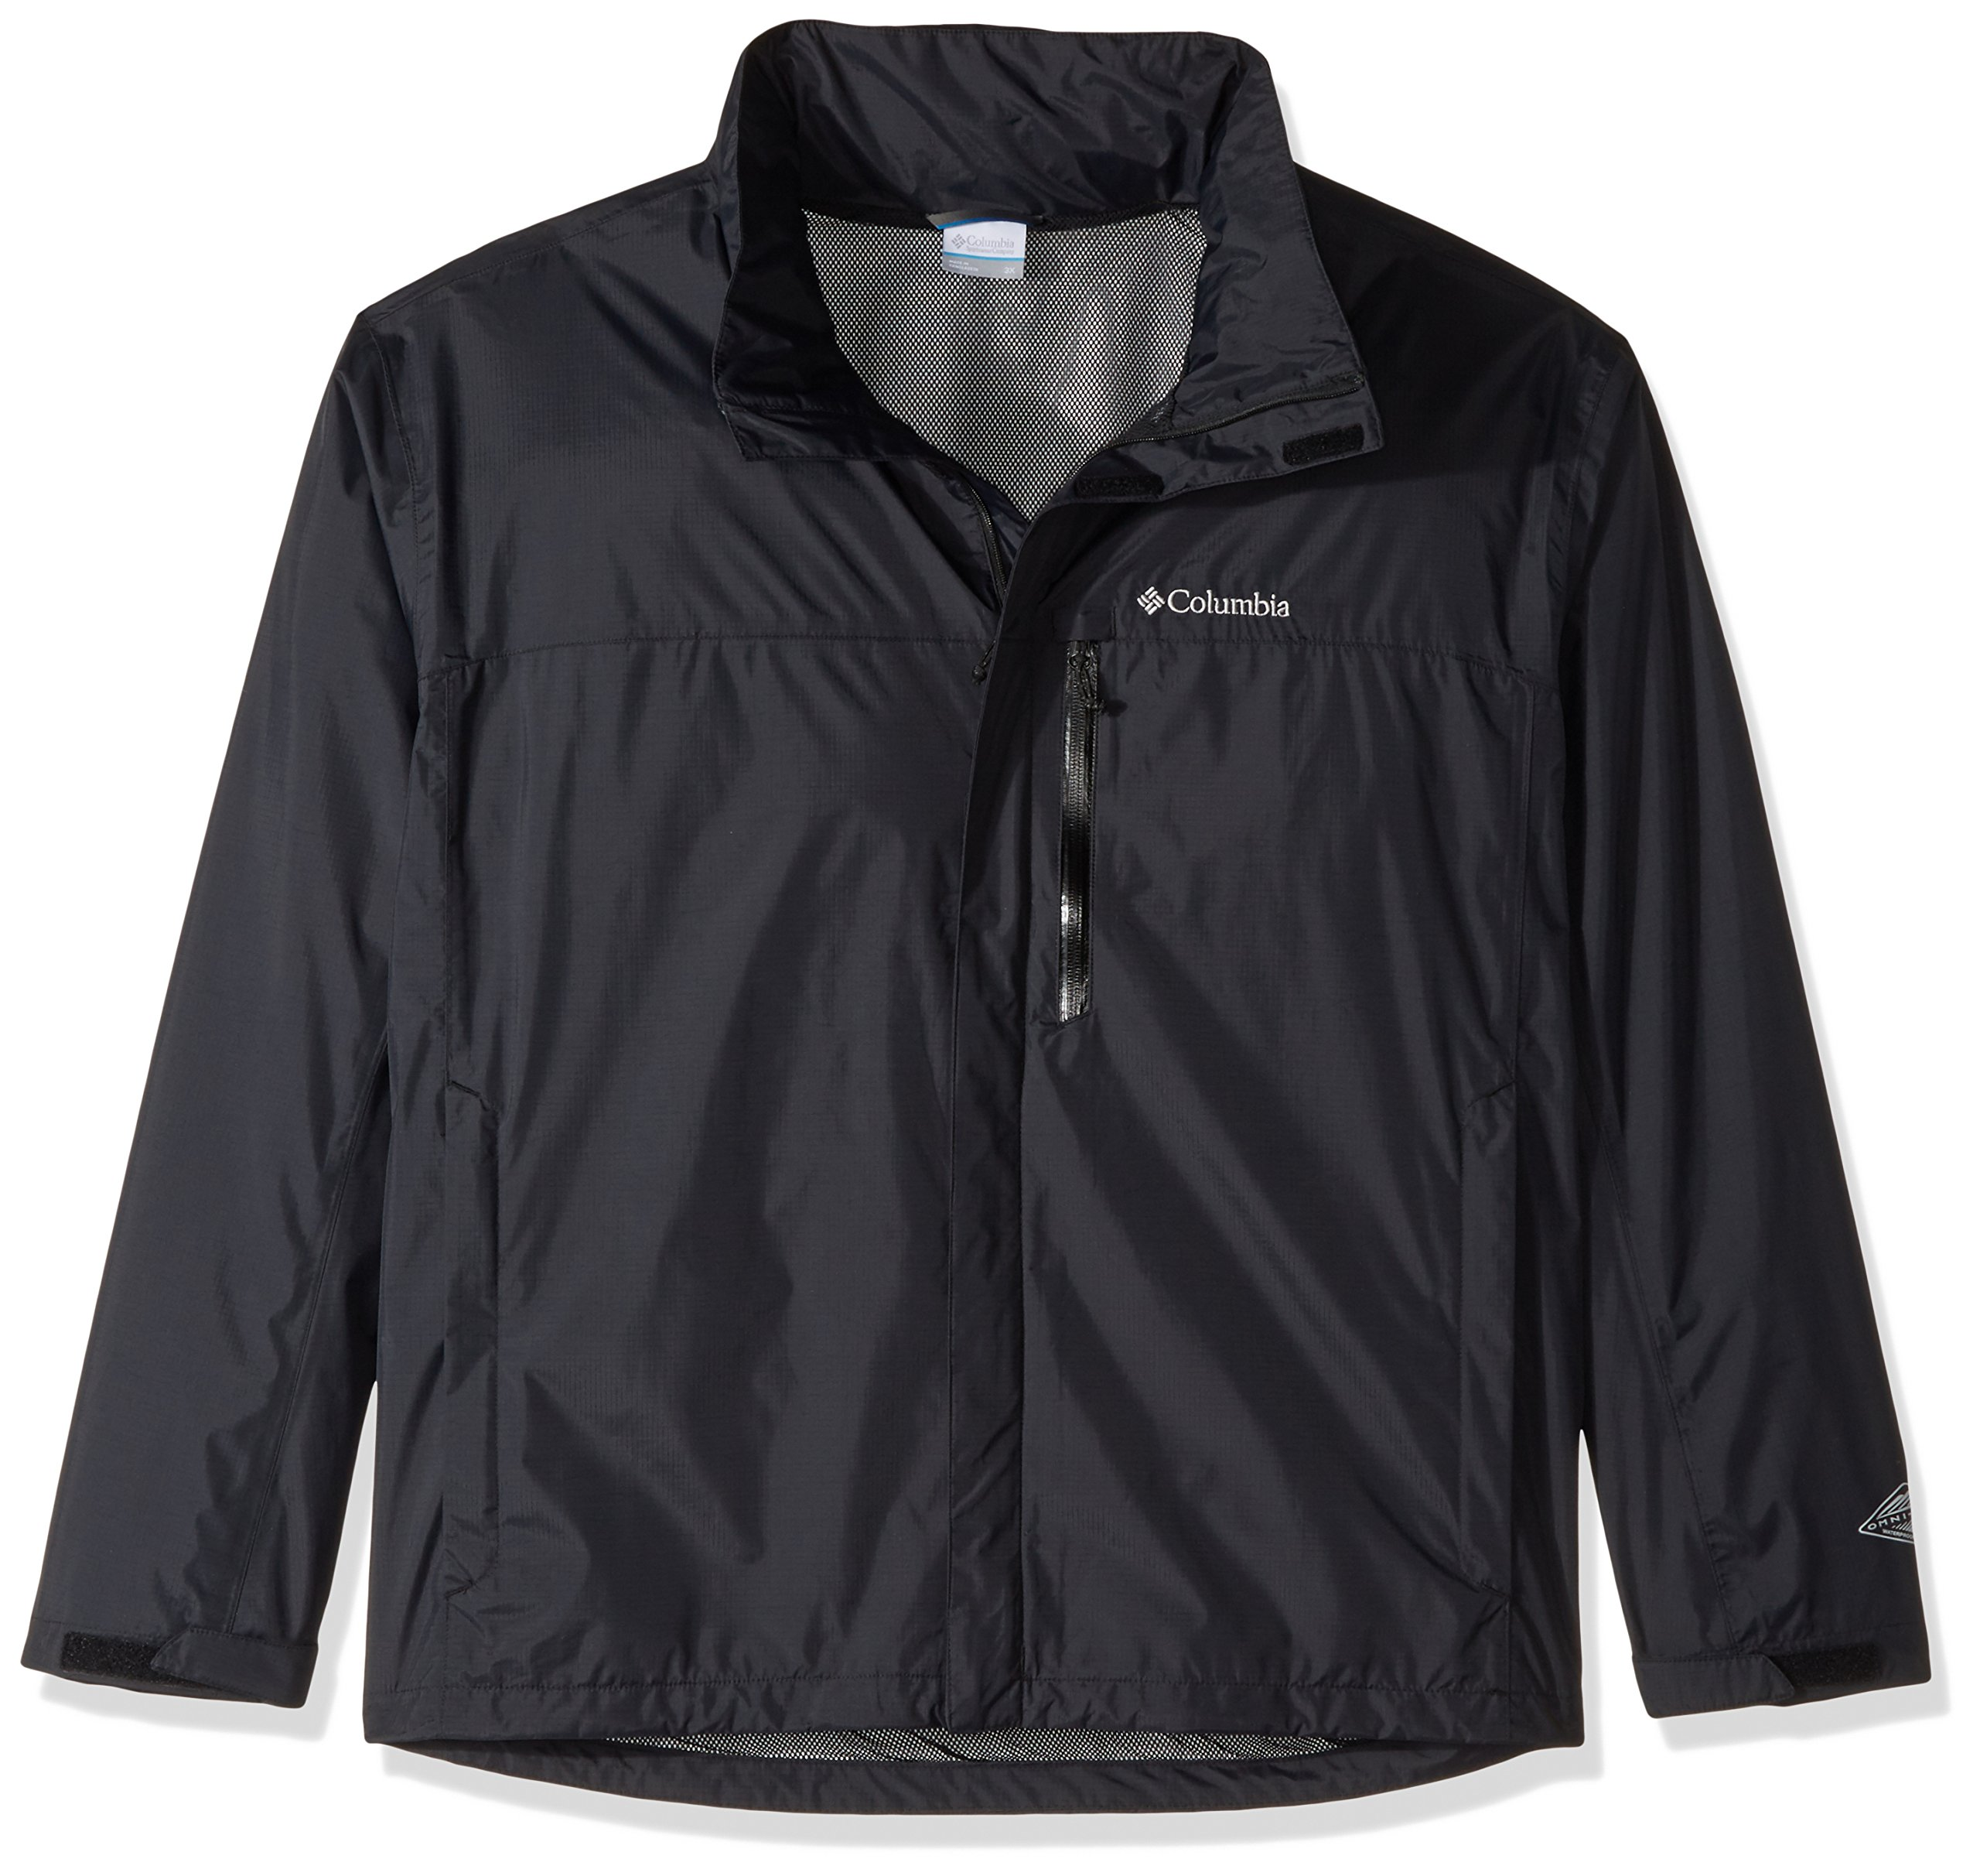 Columbia Pouration Waterproof Jacket Black